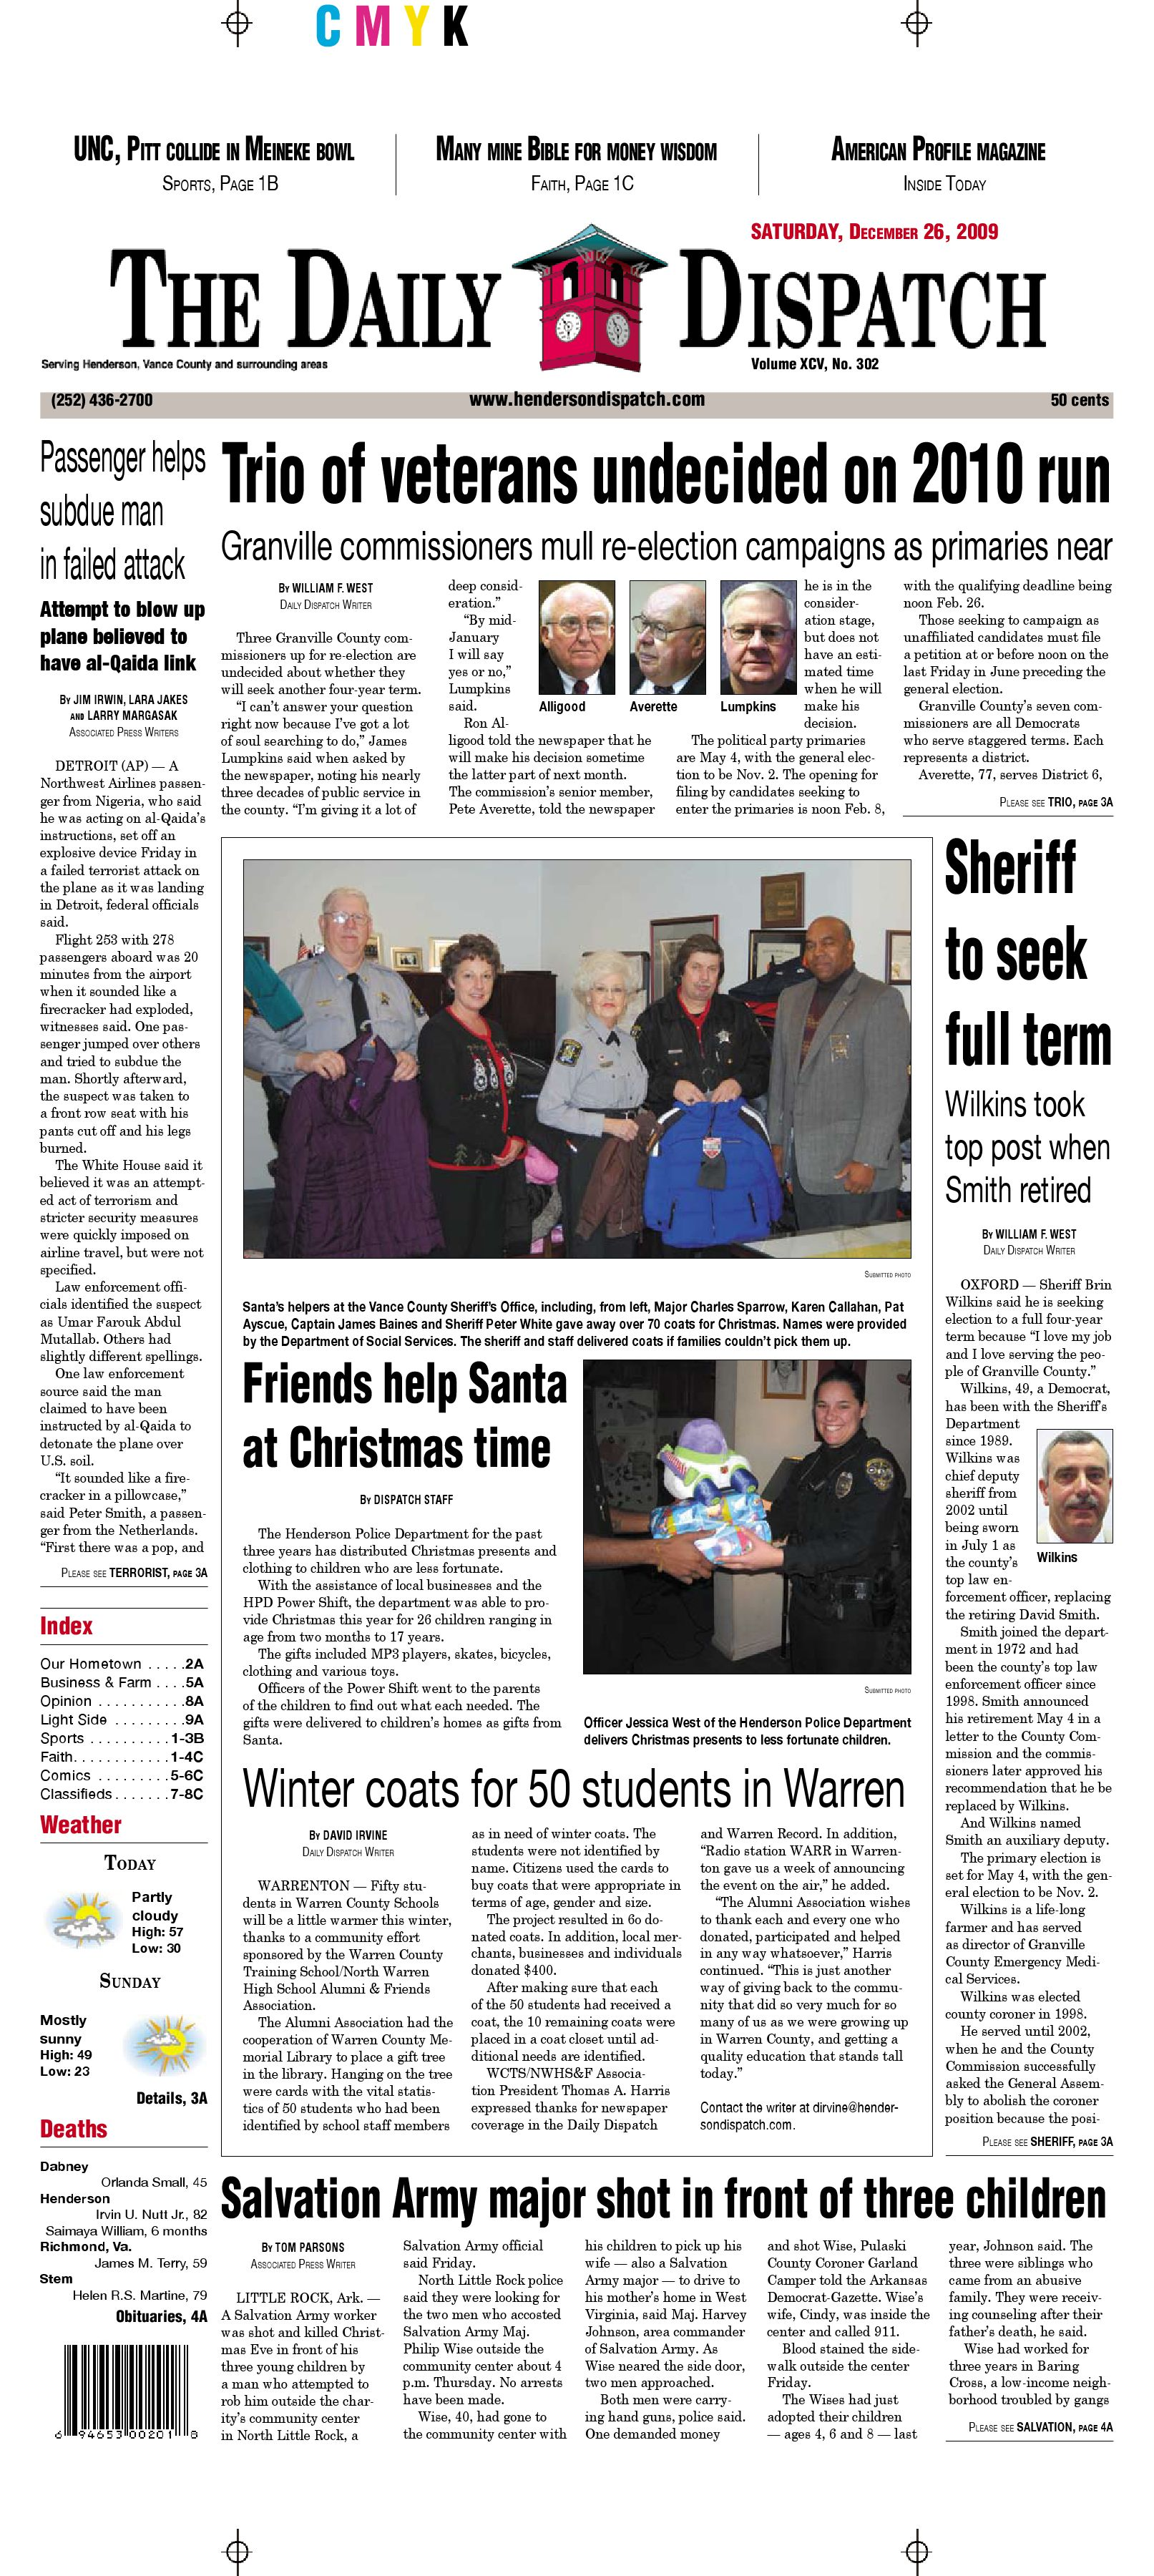 The Daily Dispatch - Saturday, December 26, 2009 by The Daily Dispatch -  issuu